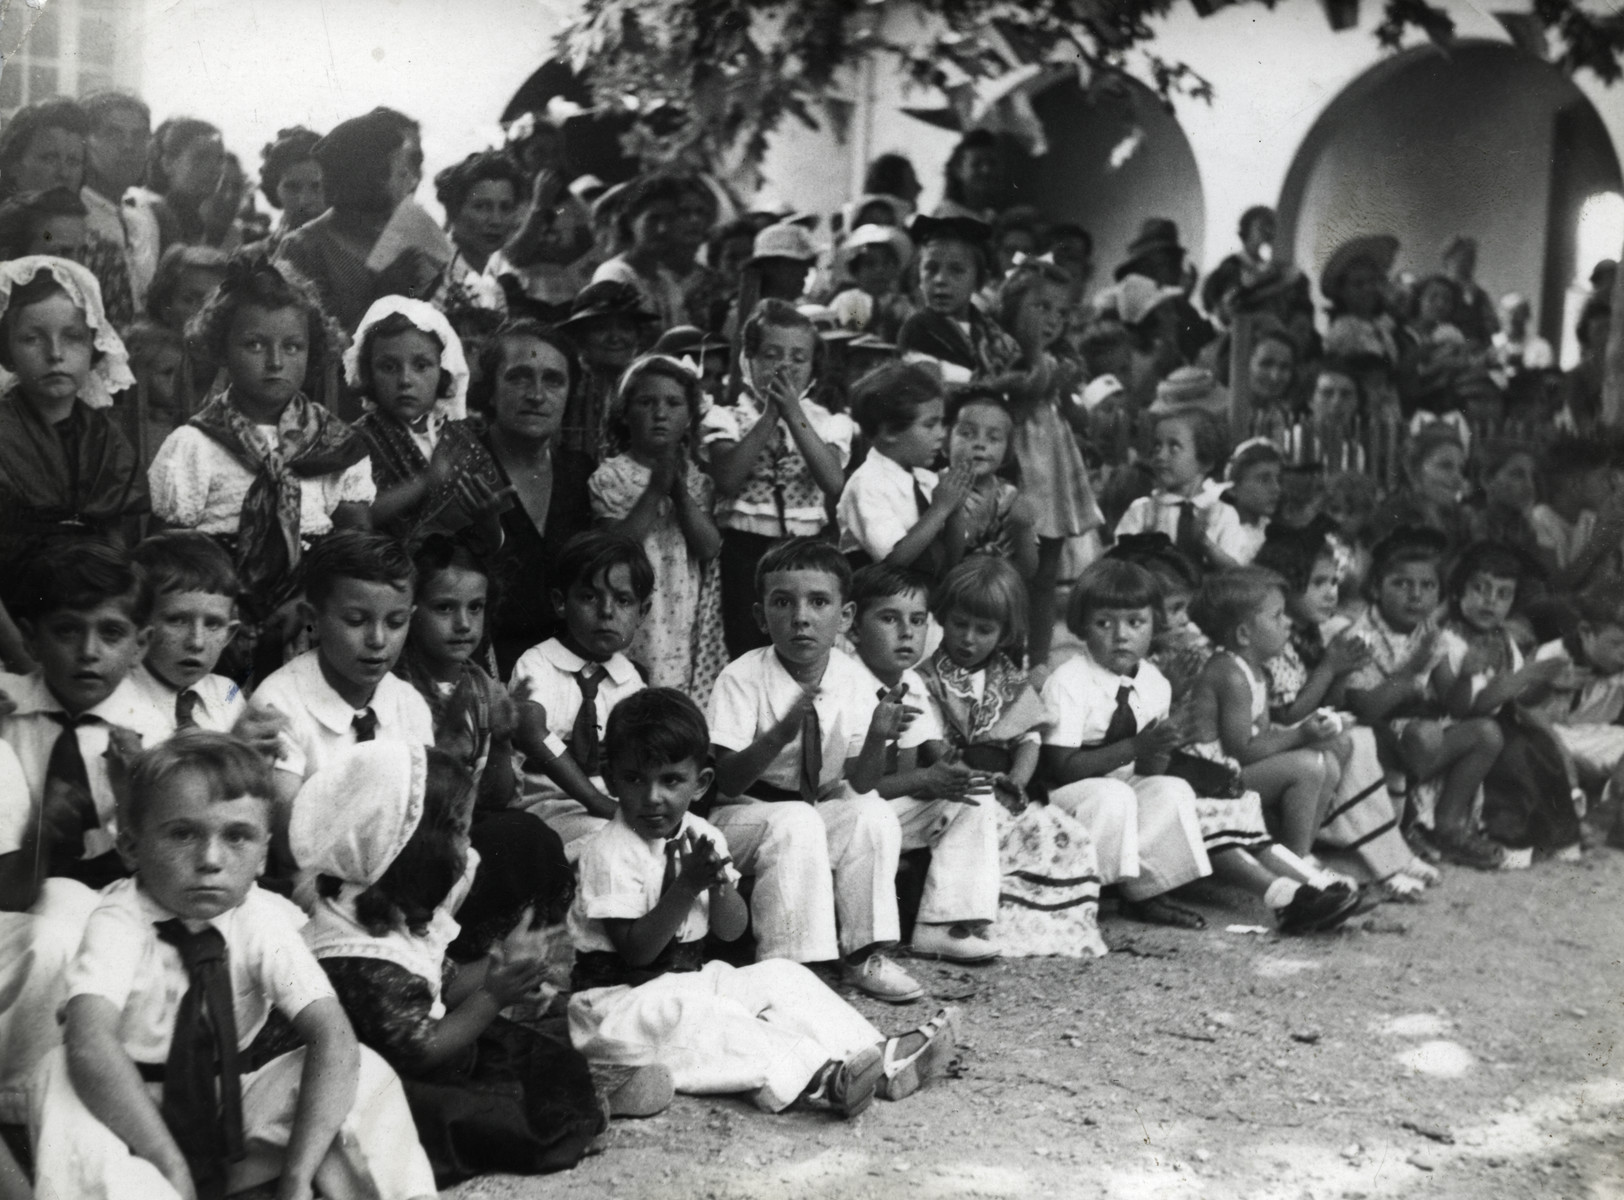 A group of young children in costume gather on the Blvd. Victor Hugo in Bandol, France.  Joseph Schreiber is pictured in the second row, second from the left.